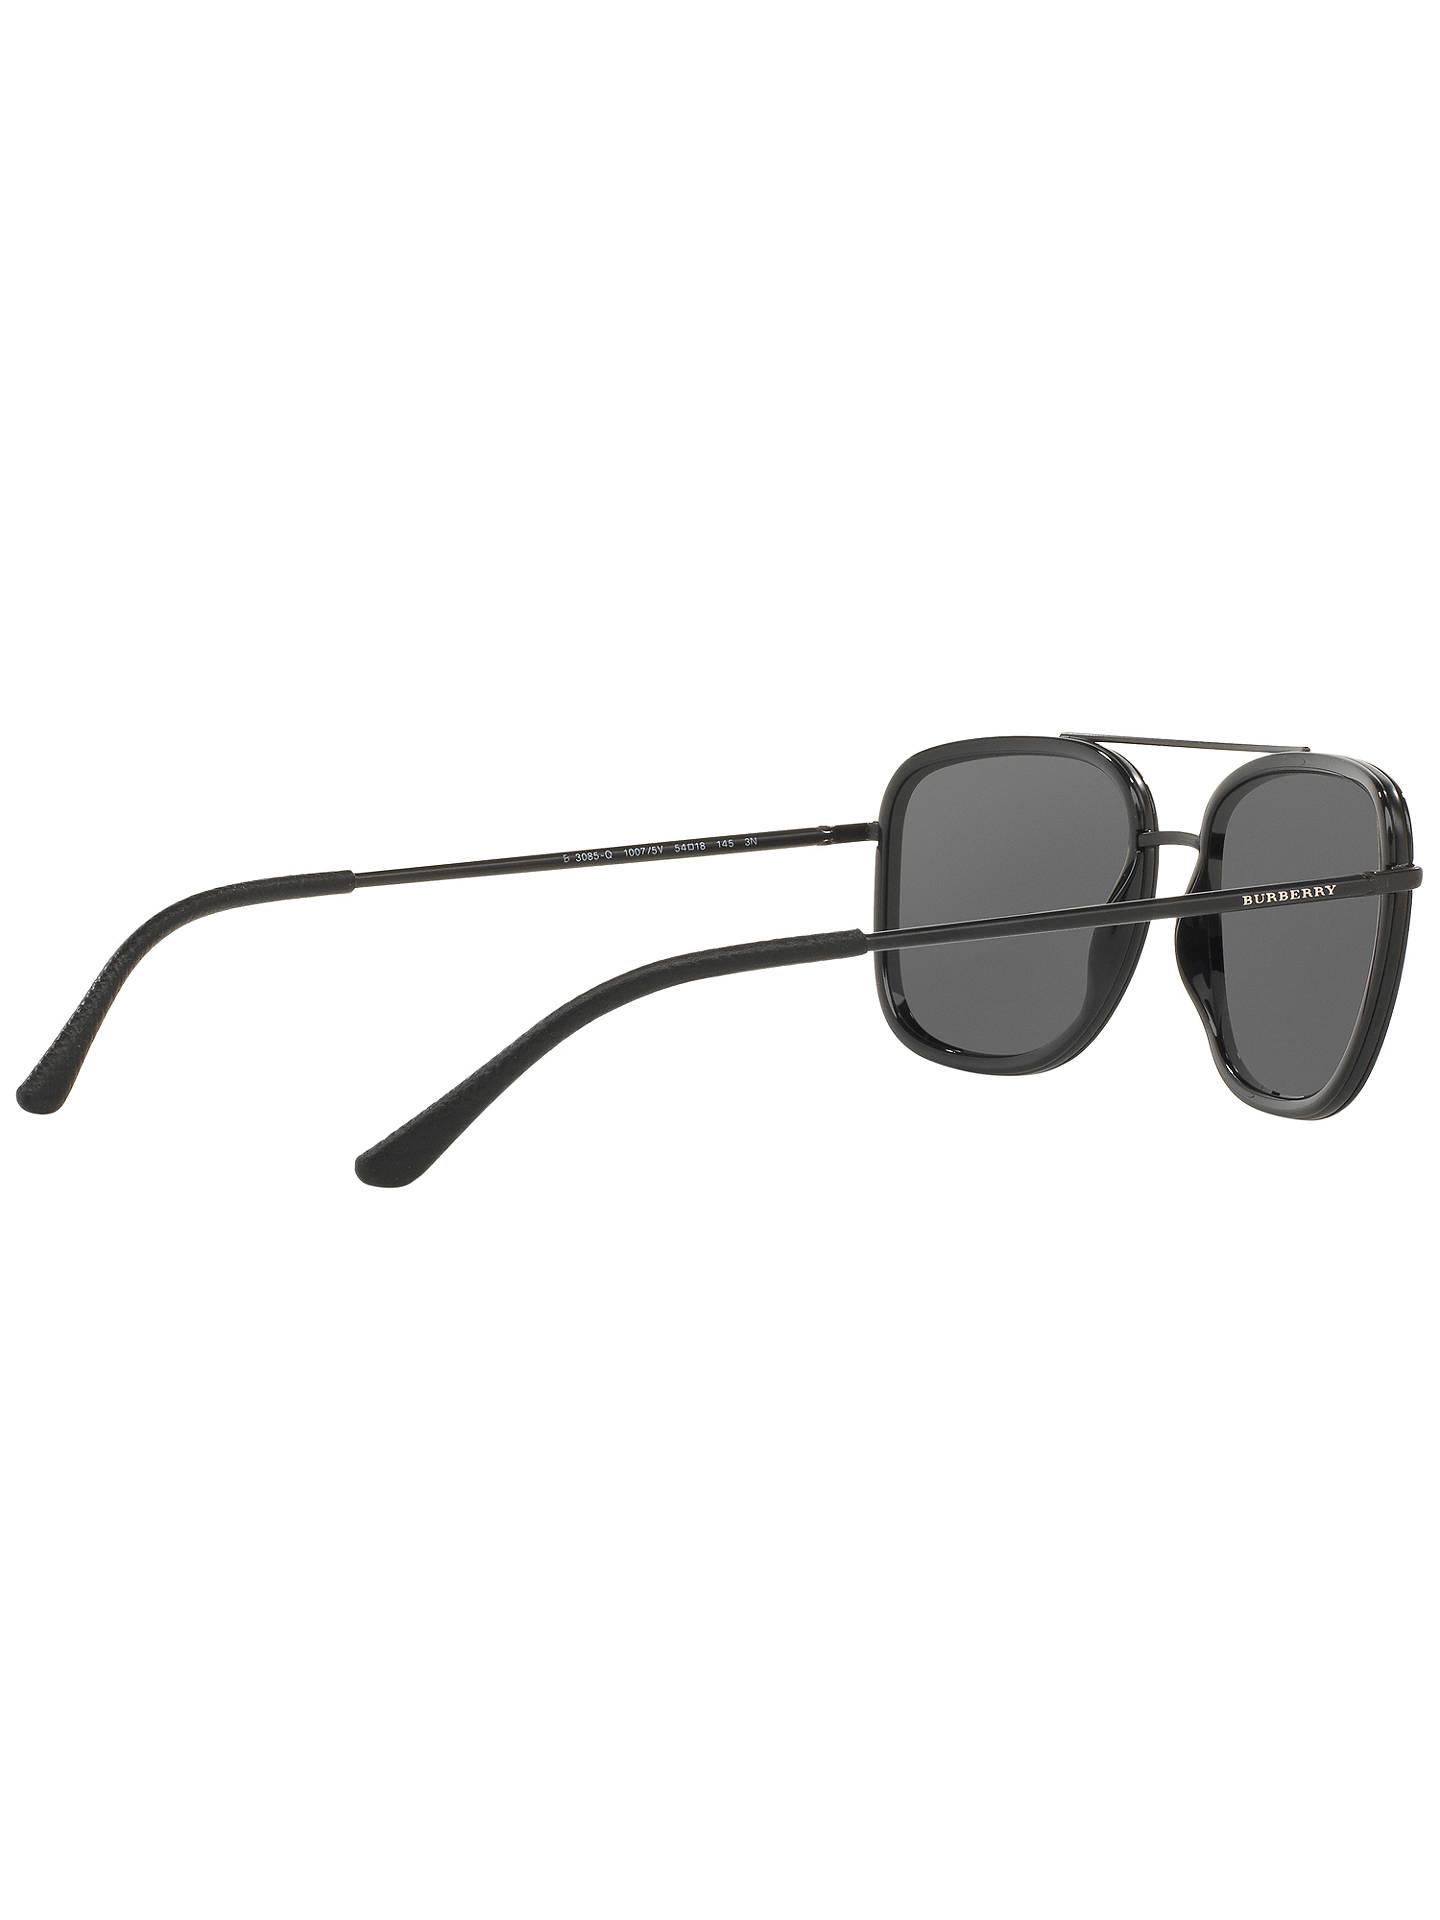 Buy Burberry BE3085 Square Sunglasses, Black Online at johnlewis.com